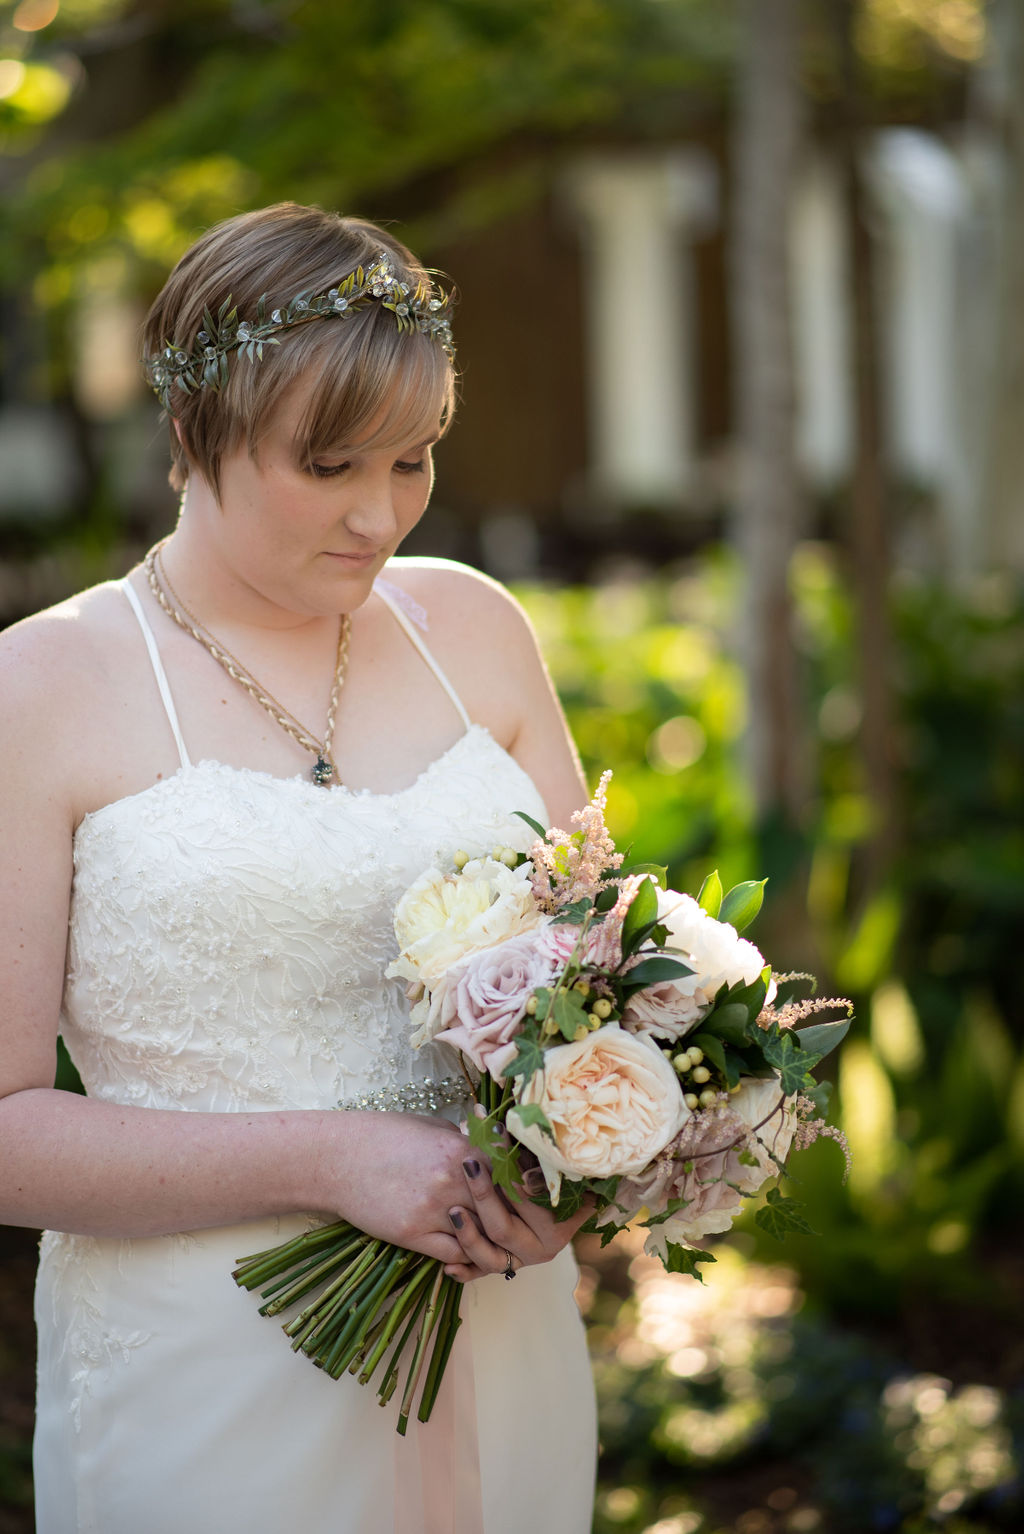 st-augustine-photographer-wedding-house-of-assembly-events-st-augustine-florida-sarah-annay37.jpg